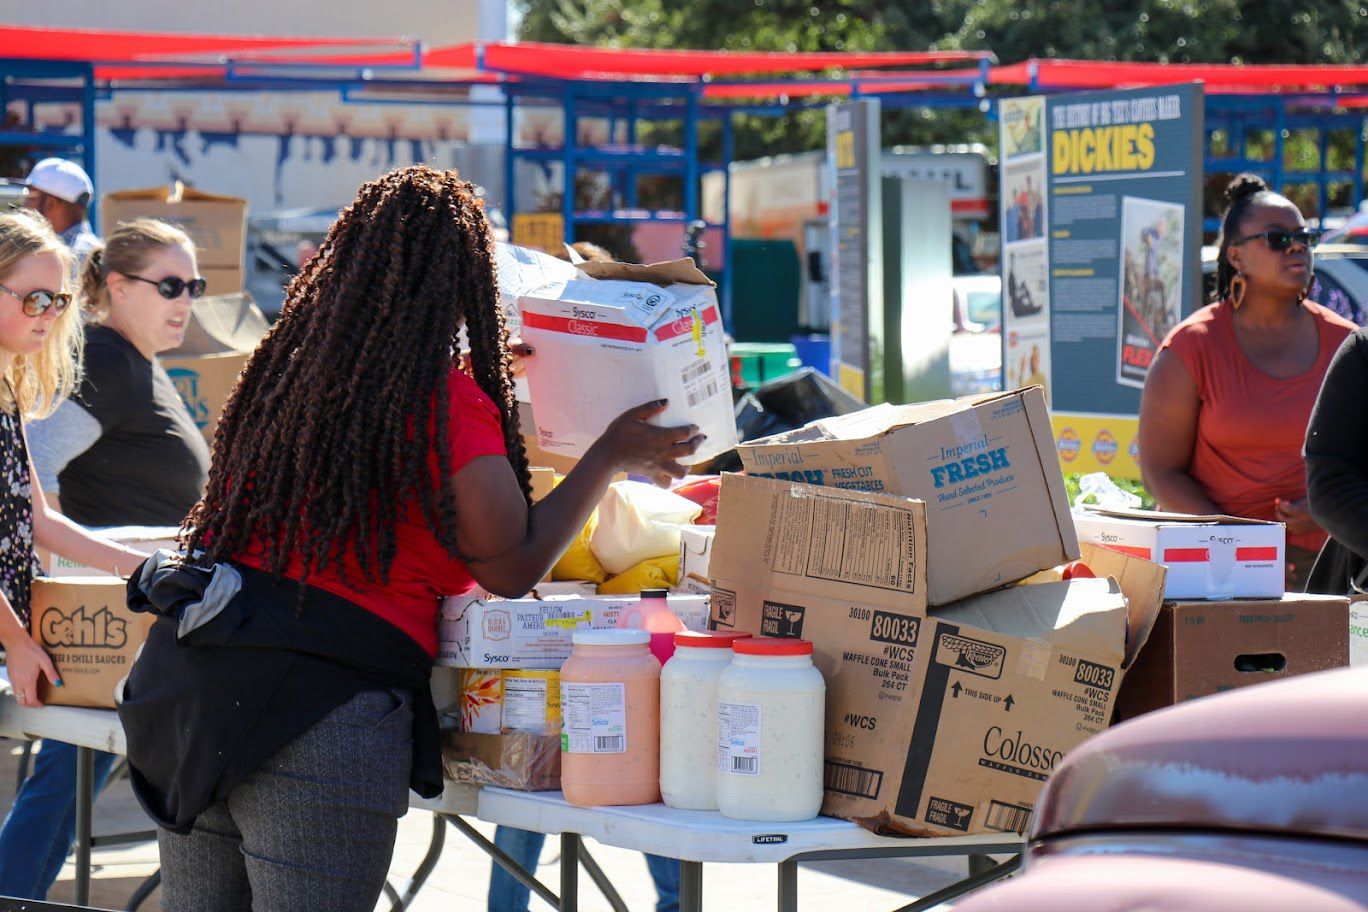 Organizers at the State Fair work tirelessly to redirect proceeds into charitable, community-building groups throughout the region.